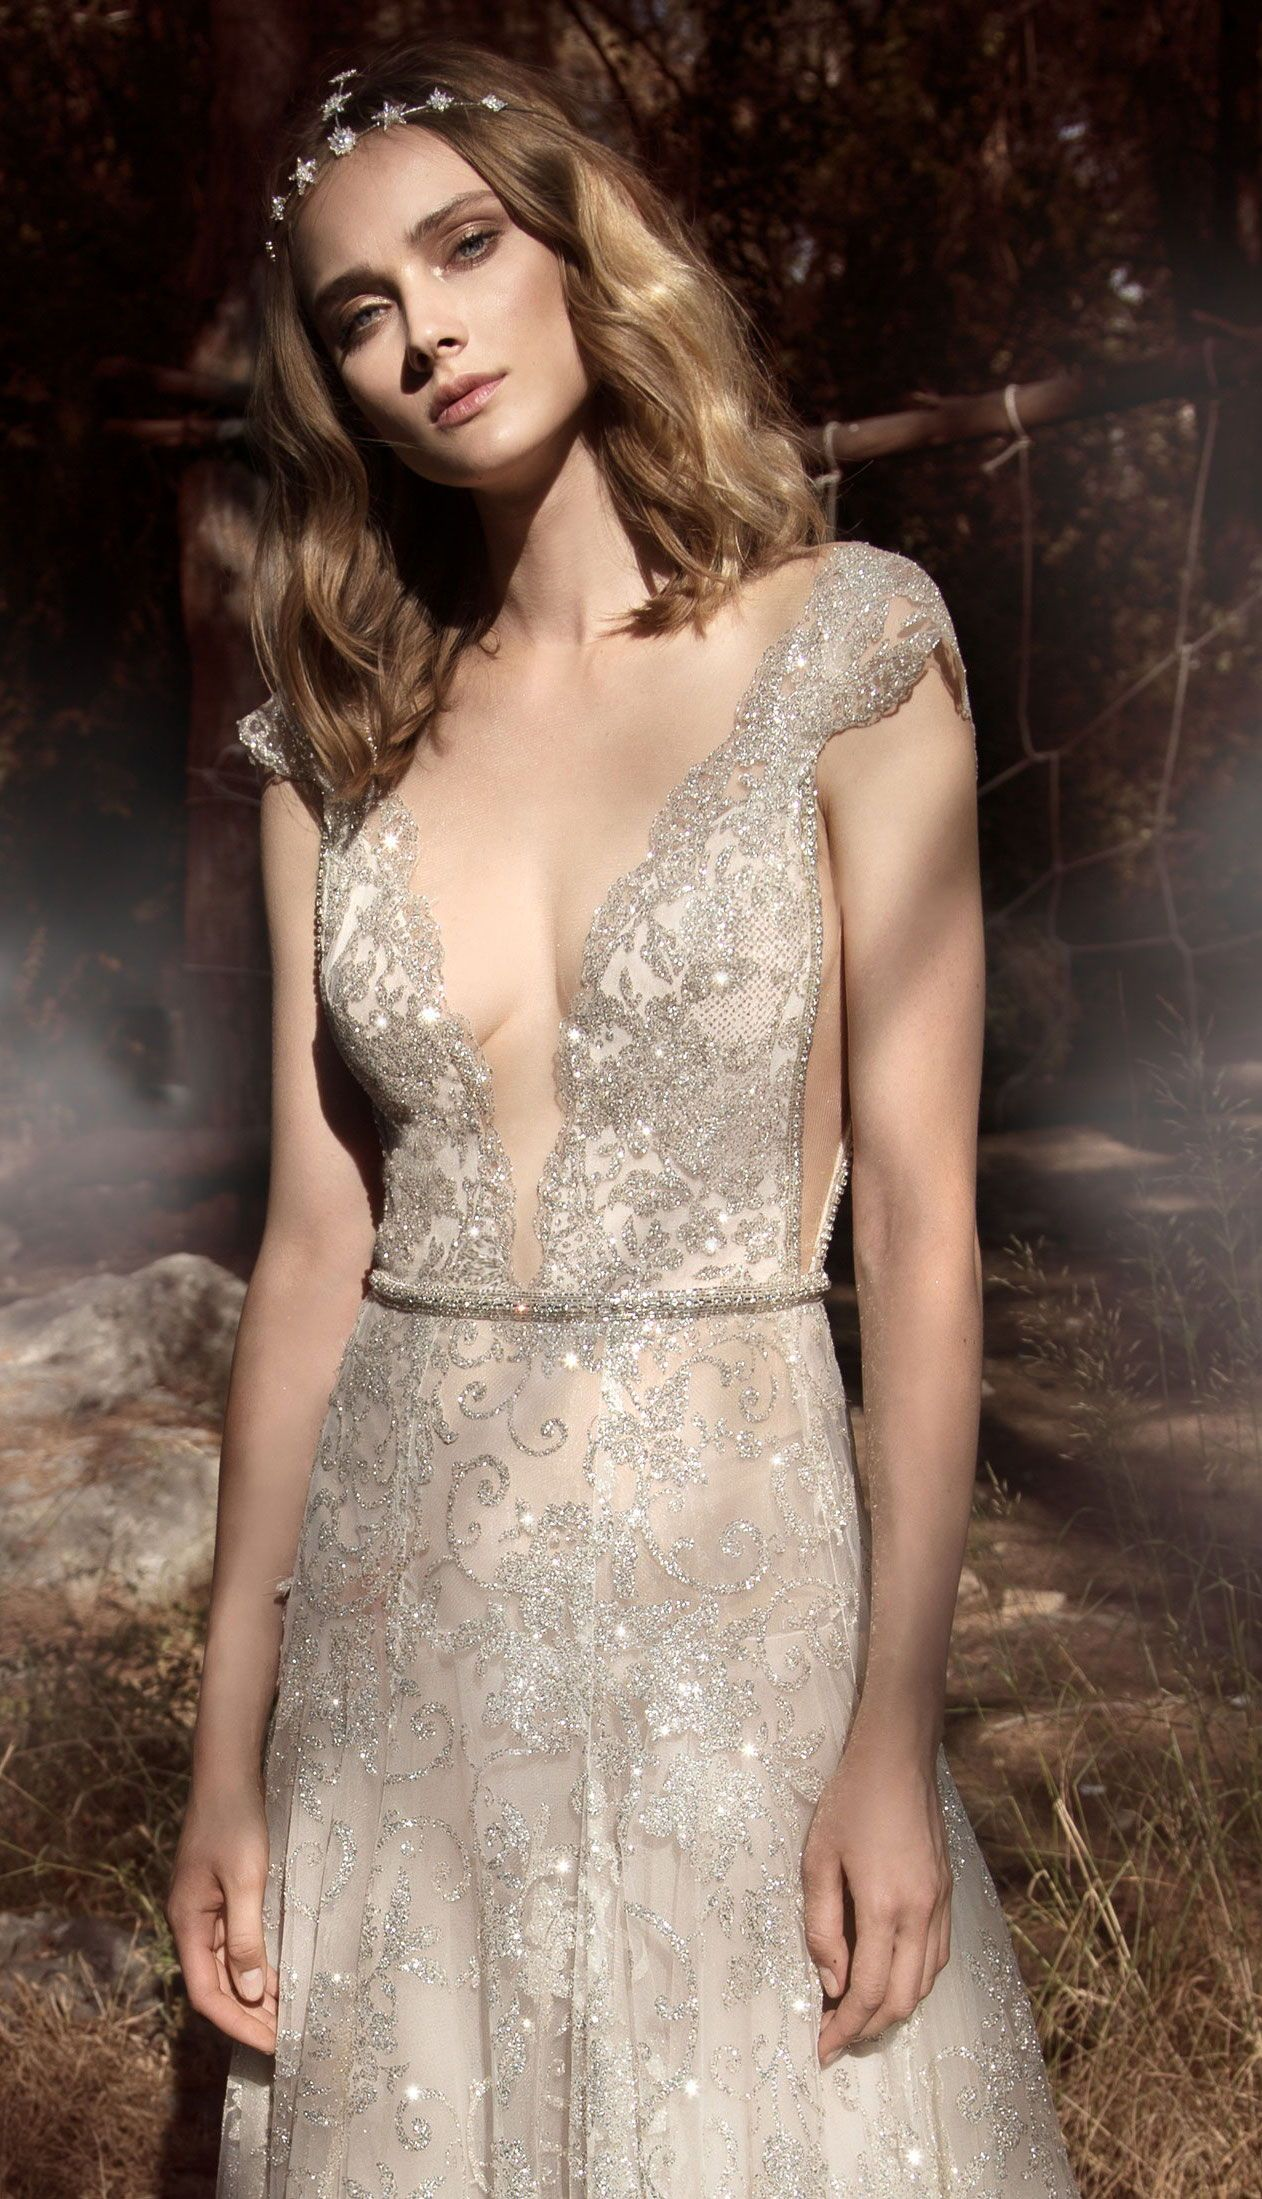 A close look at the beautiful #GALA903 french lace wedding dress ...